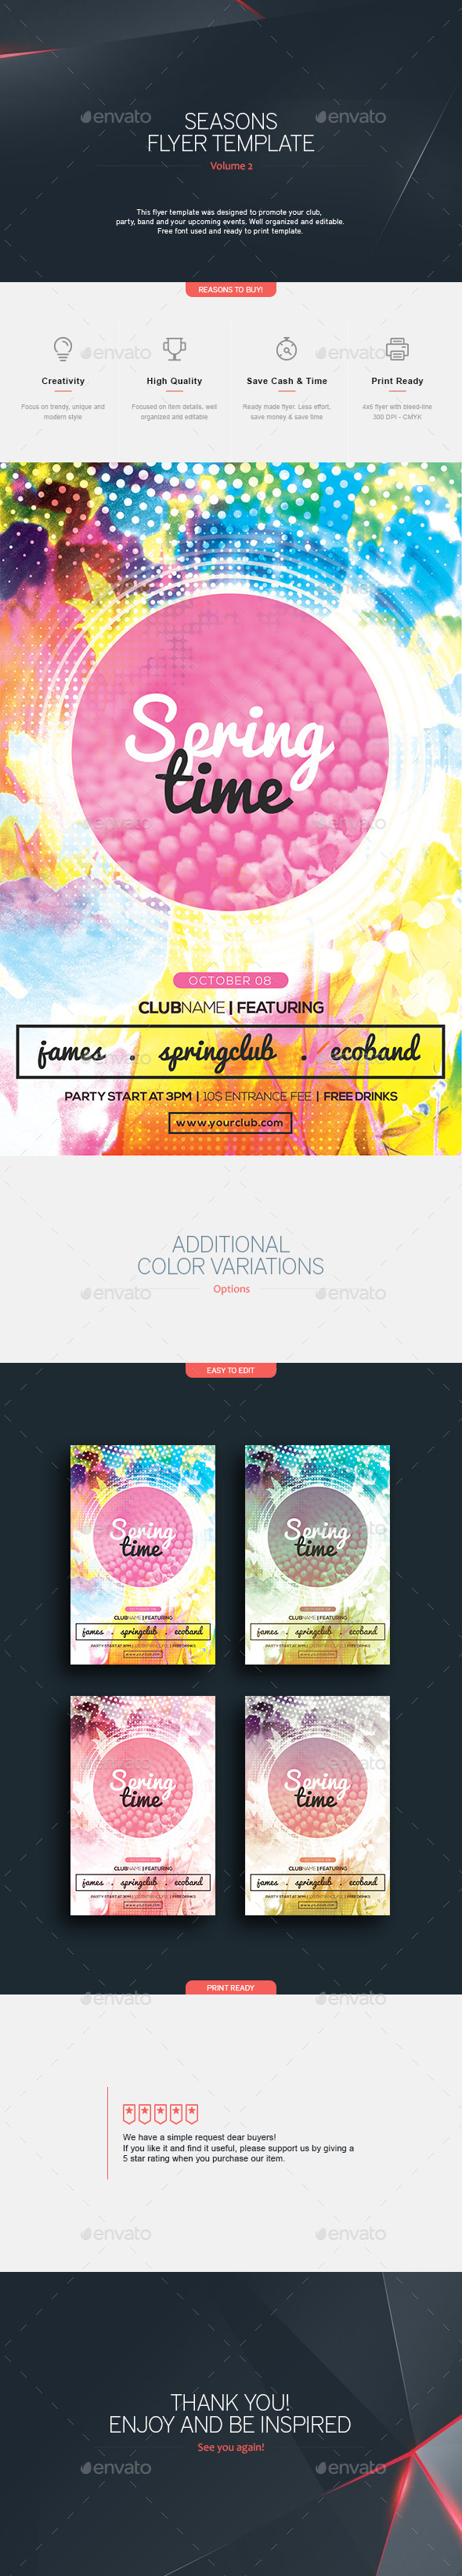 Spring Time Flyer Template